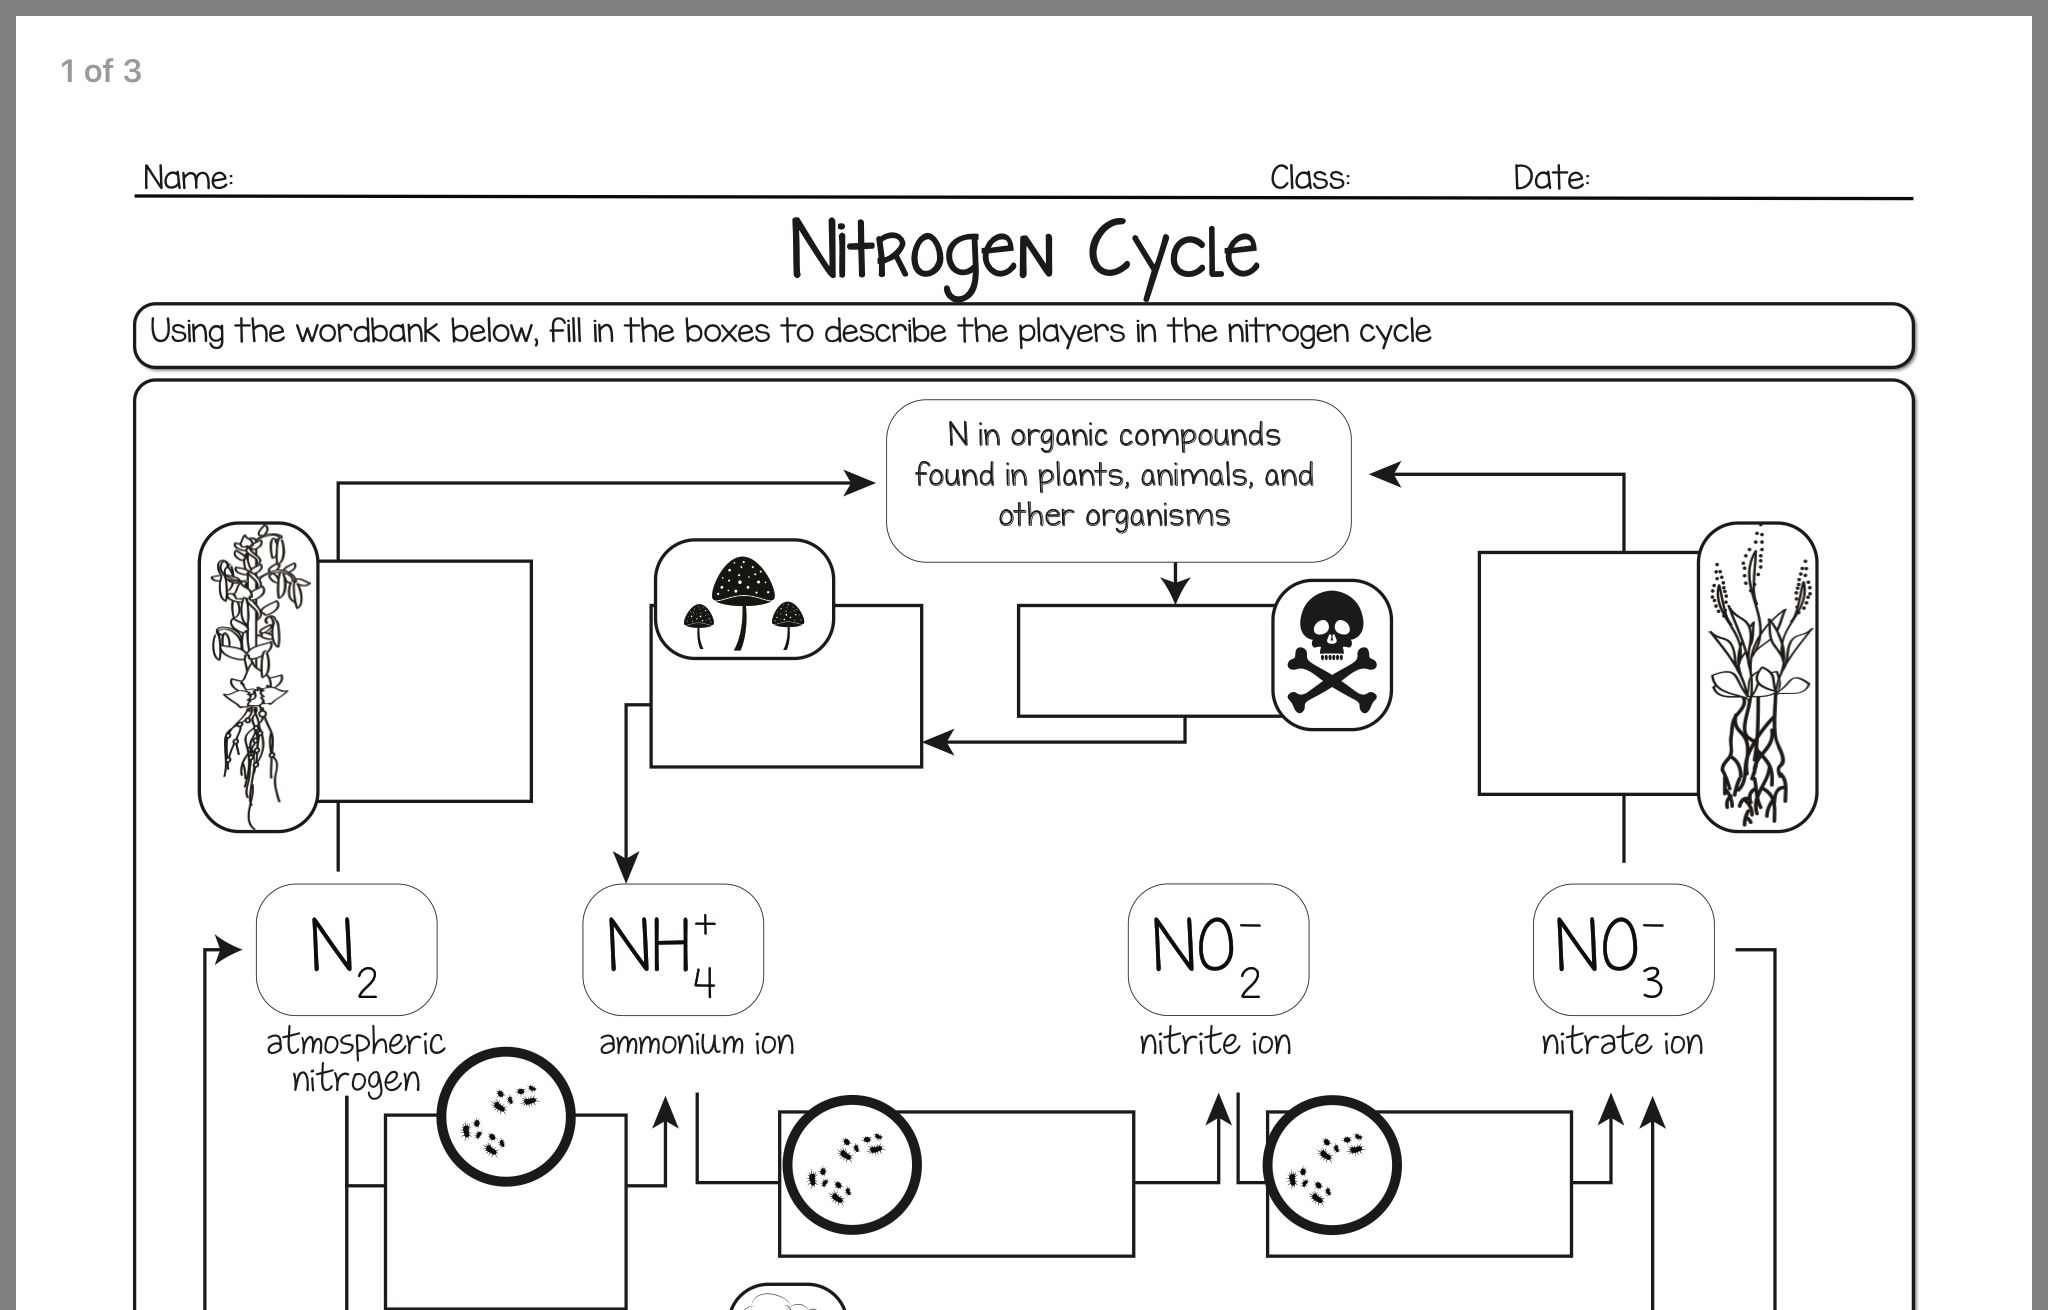 Grade 9 Nitrogen Cycle Worksheet Answers